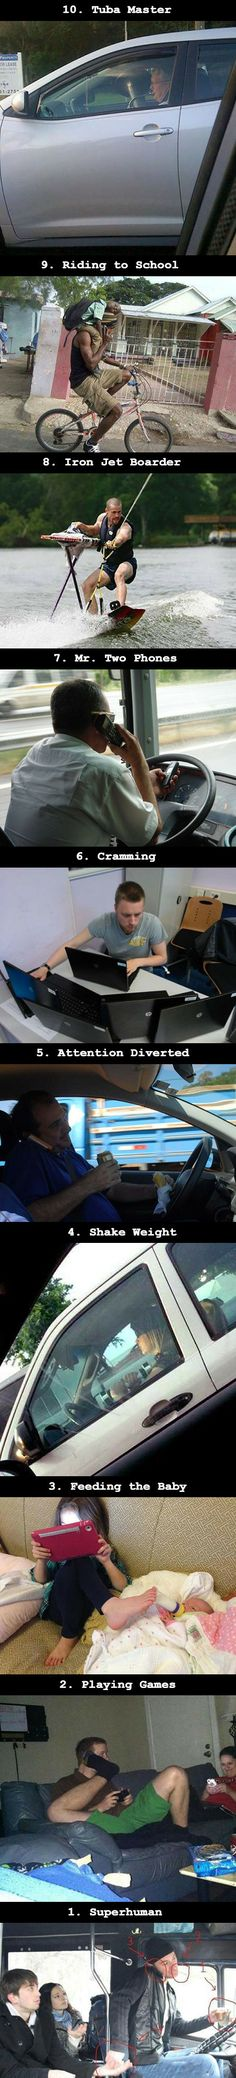 Here are 10 strange people who really should not be multi-tasking, but are anyways.